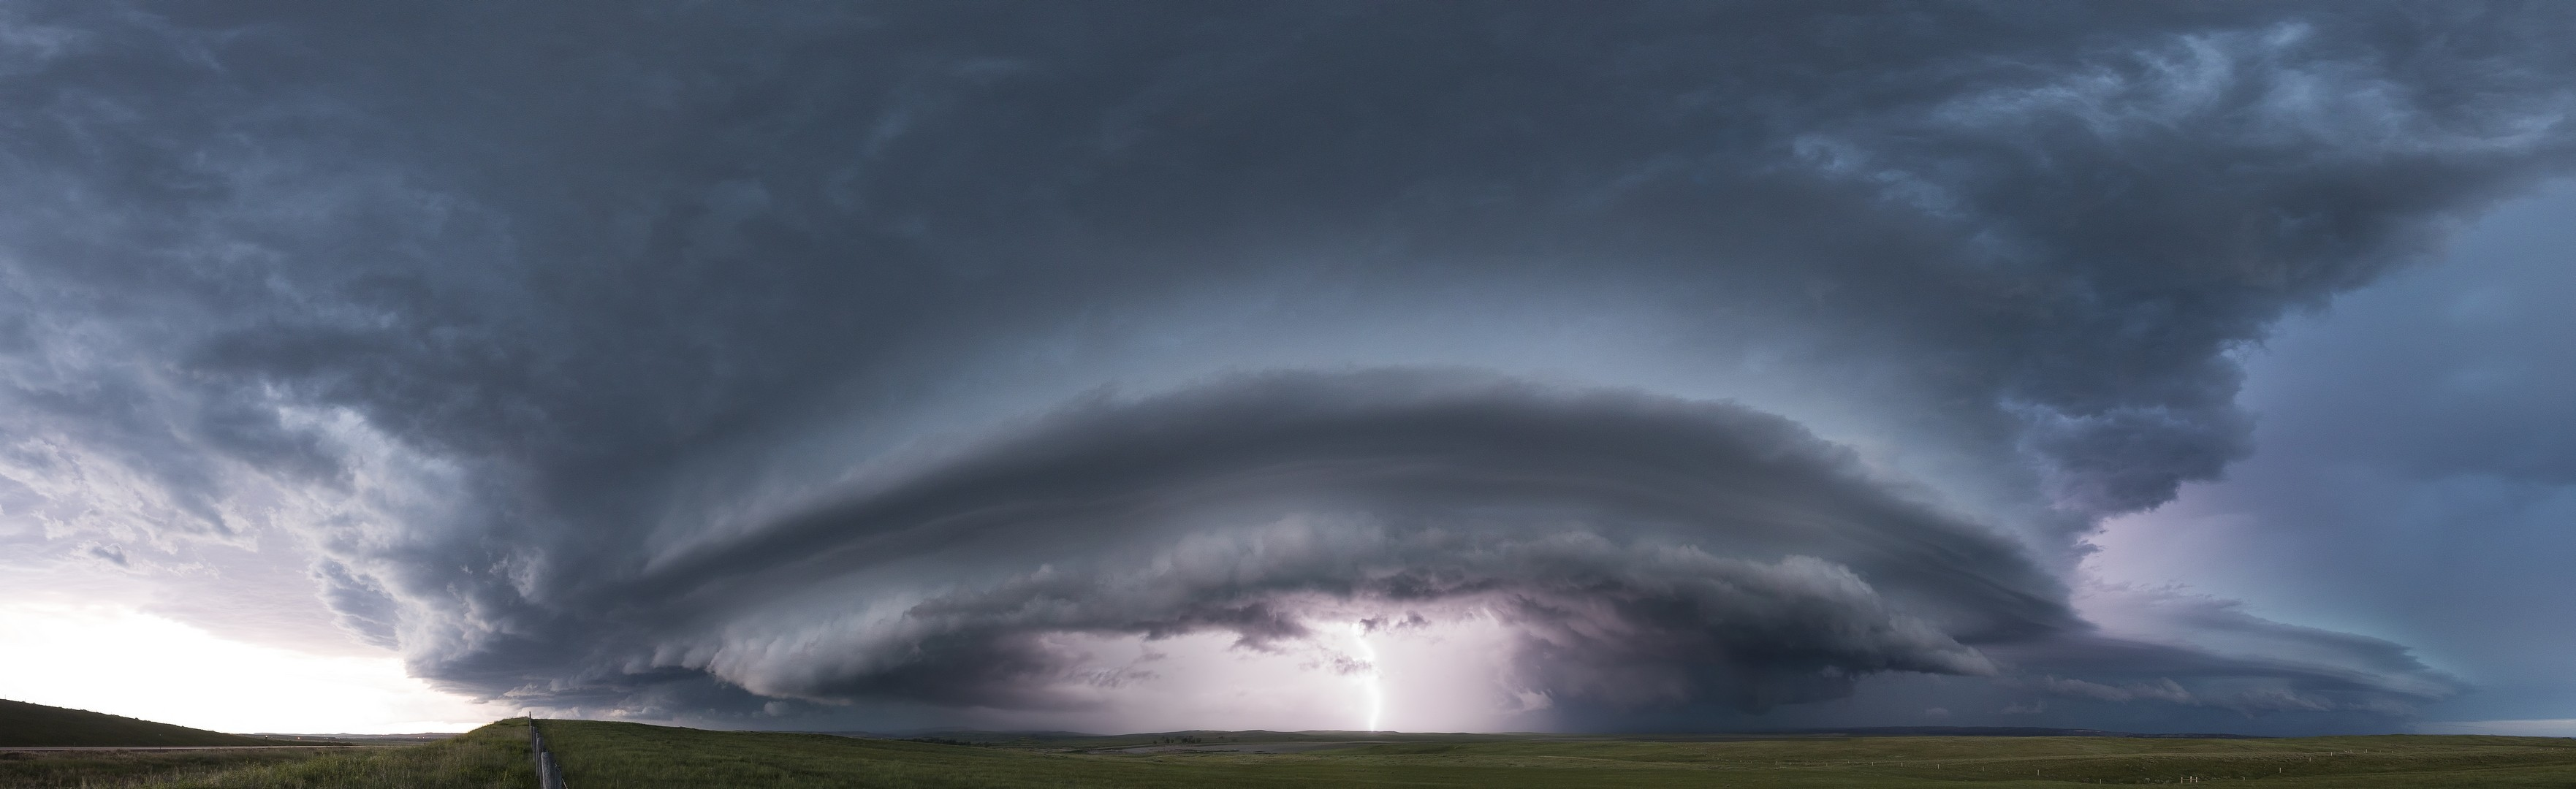 General 3525x1080 lightning storm skyscape clouds supercell (nature)